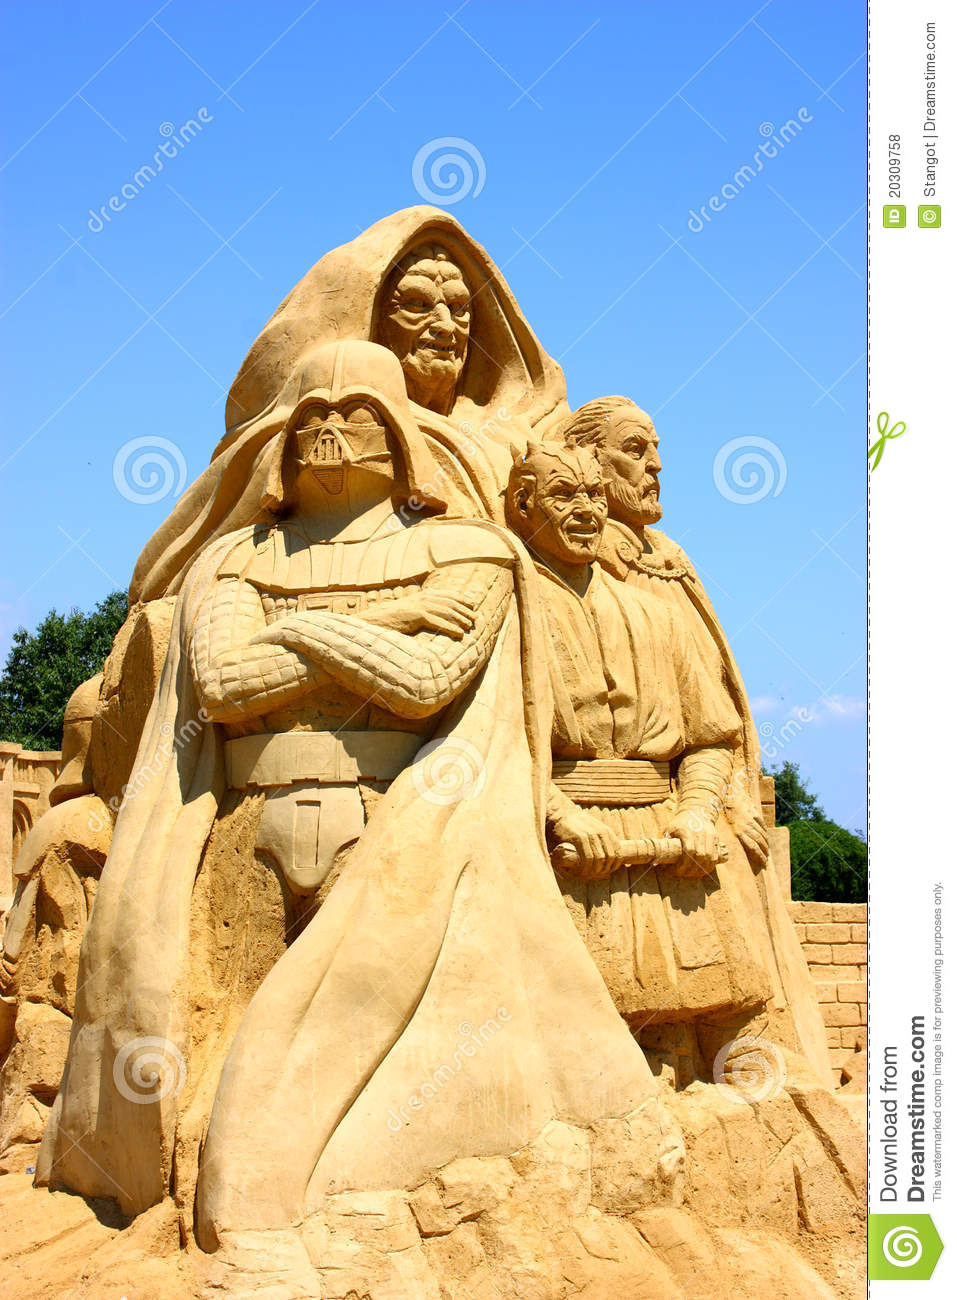 star wars sand sculpture editorial stock photo image of object